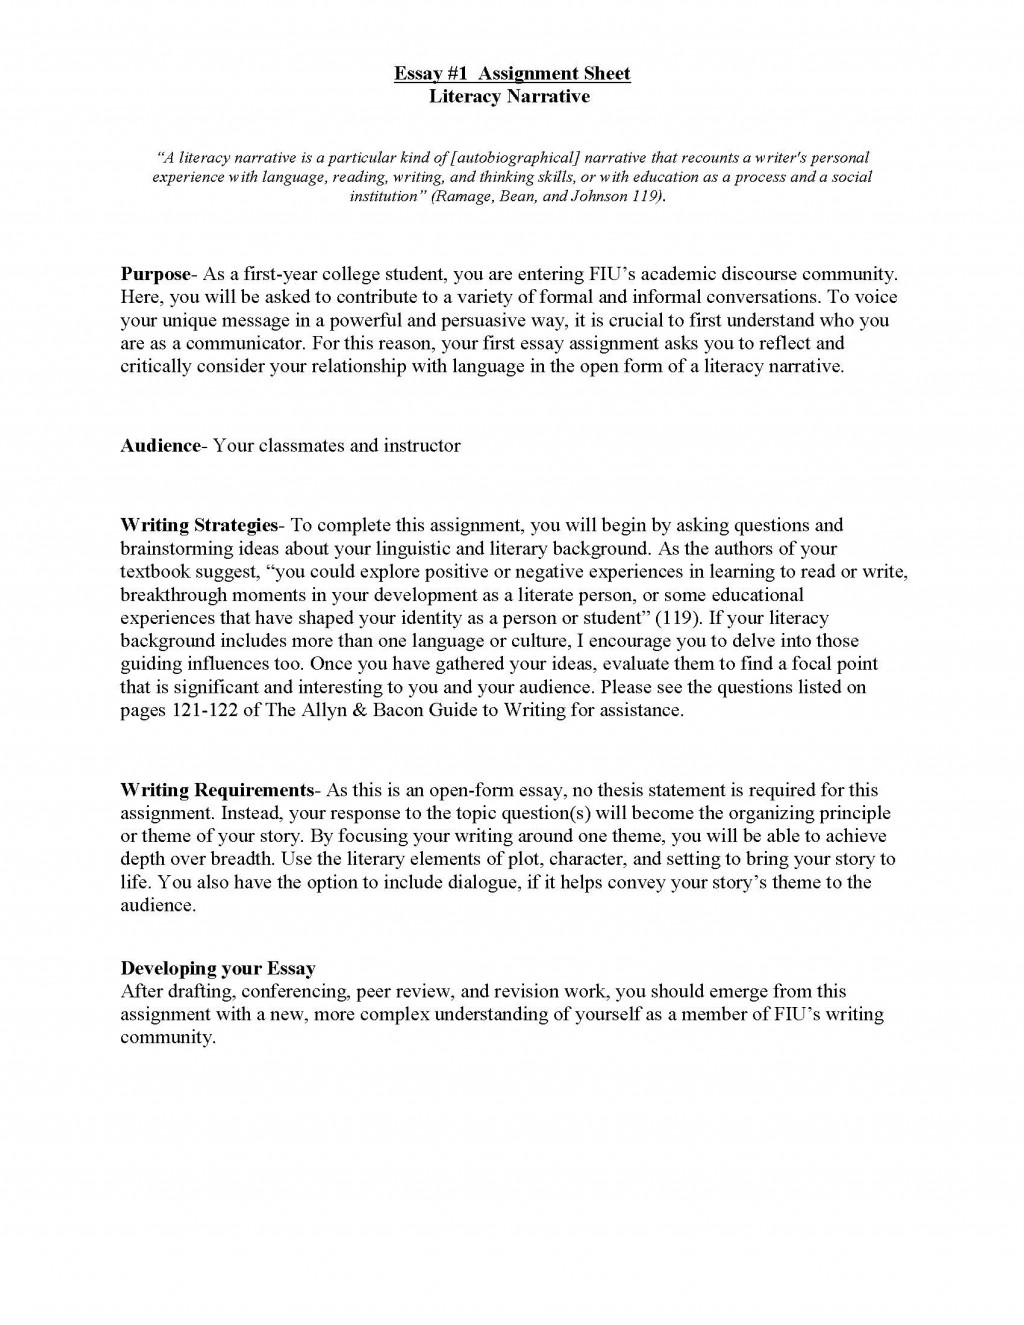 007 Conclusion For Macbeth Essay Ambition Example Literacy Narrative Unit Assignment Spring 2012 Page 1 Best Large